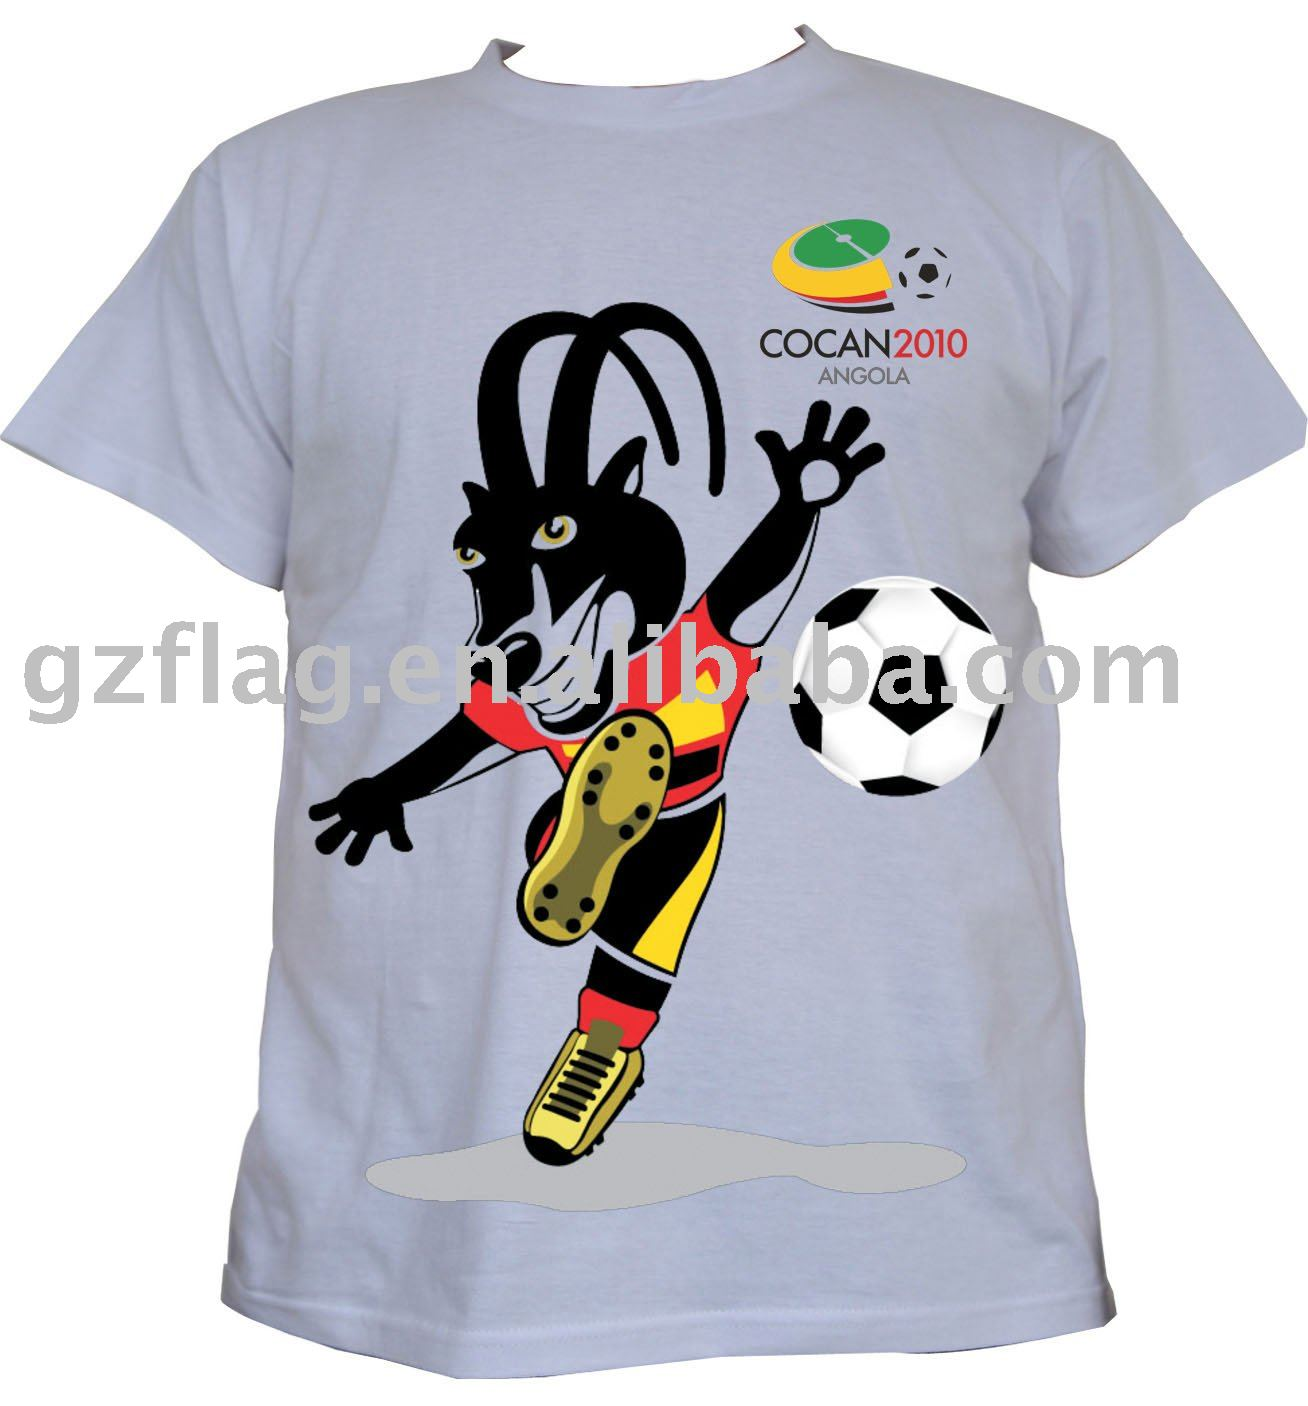 Cheapest Promotion Election Cotton and Polyester Printing T-shirt